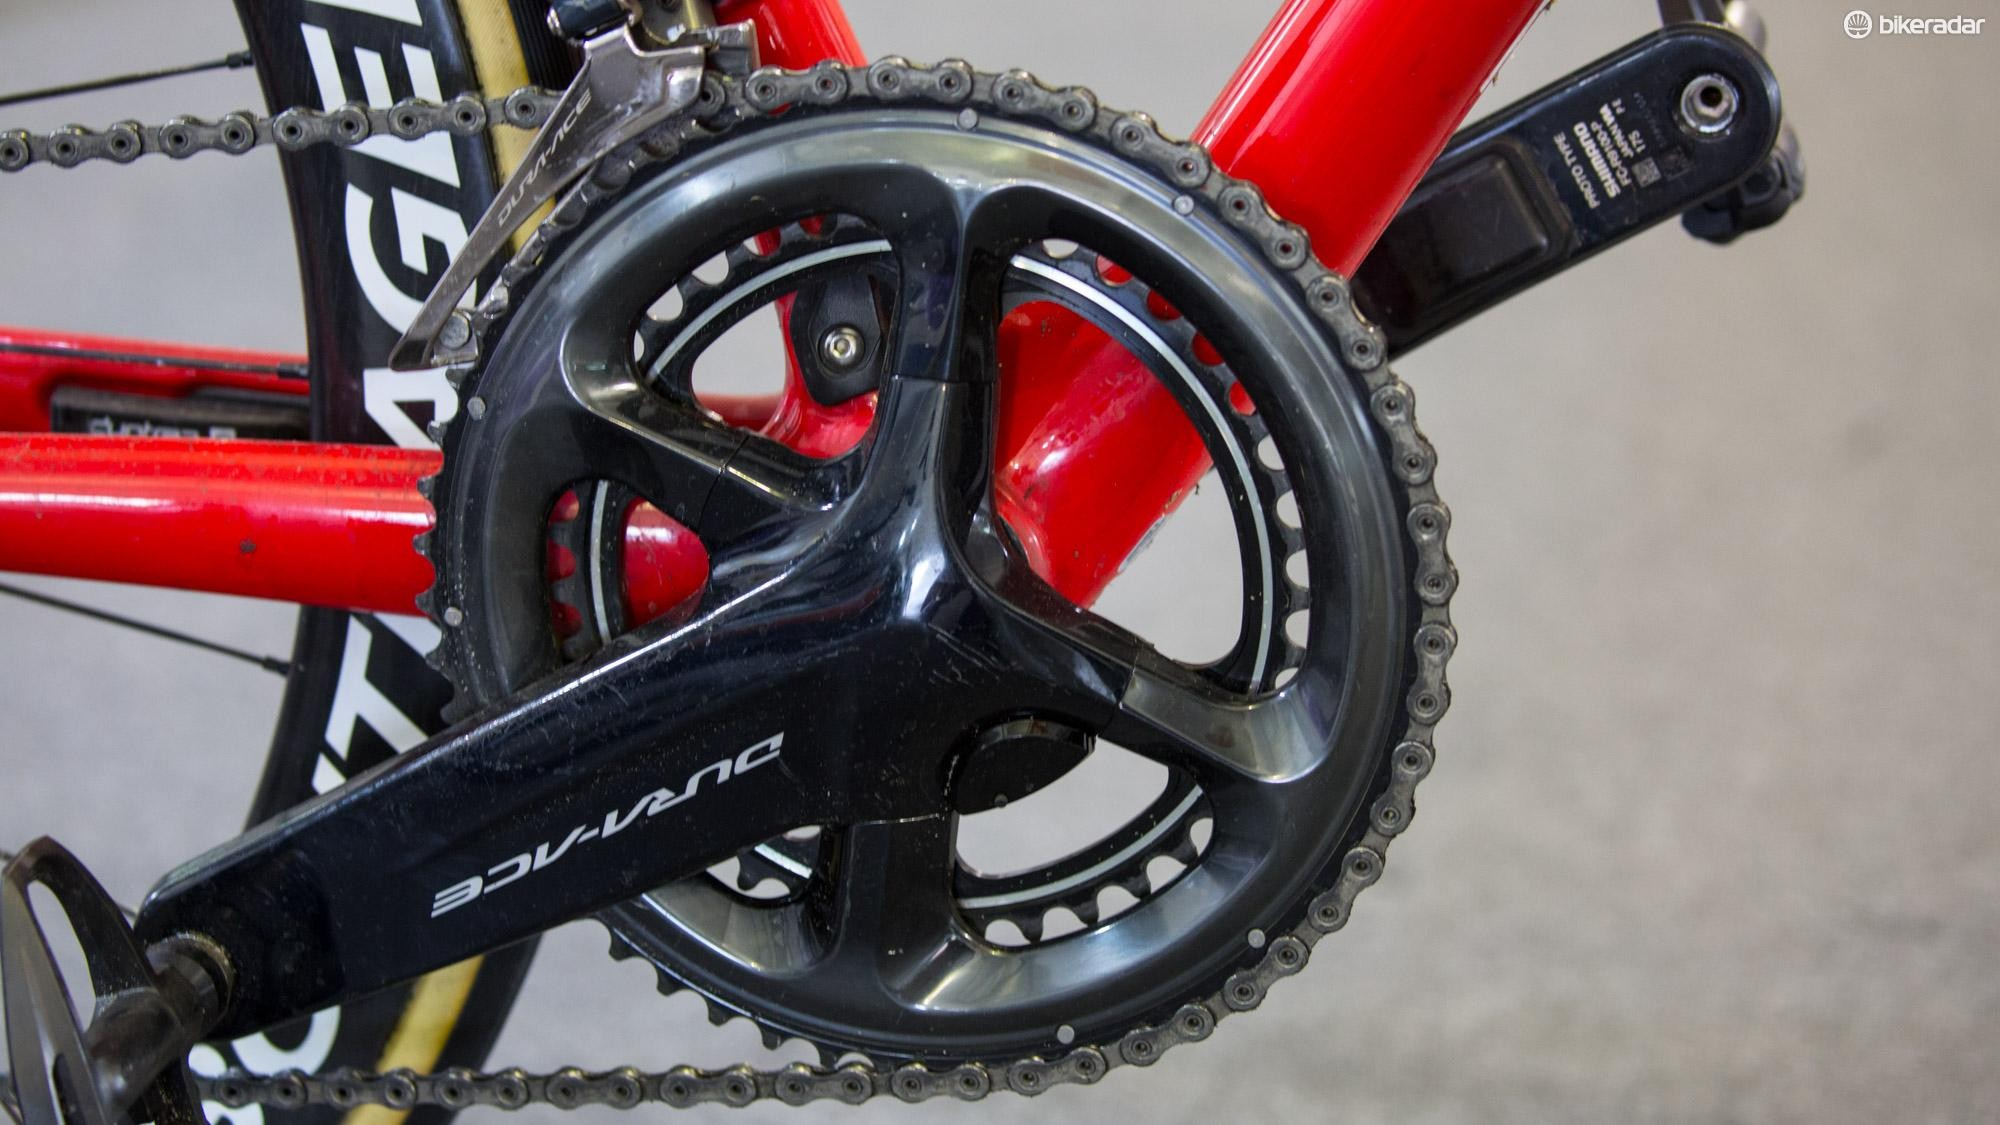 Late last month Shimano told BikeRadar it would be providing power meters to to Team Sky